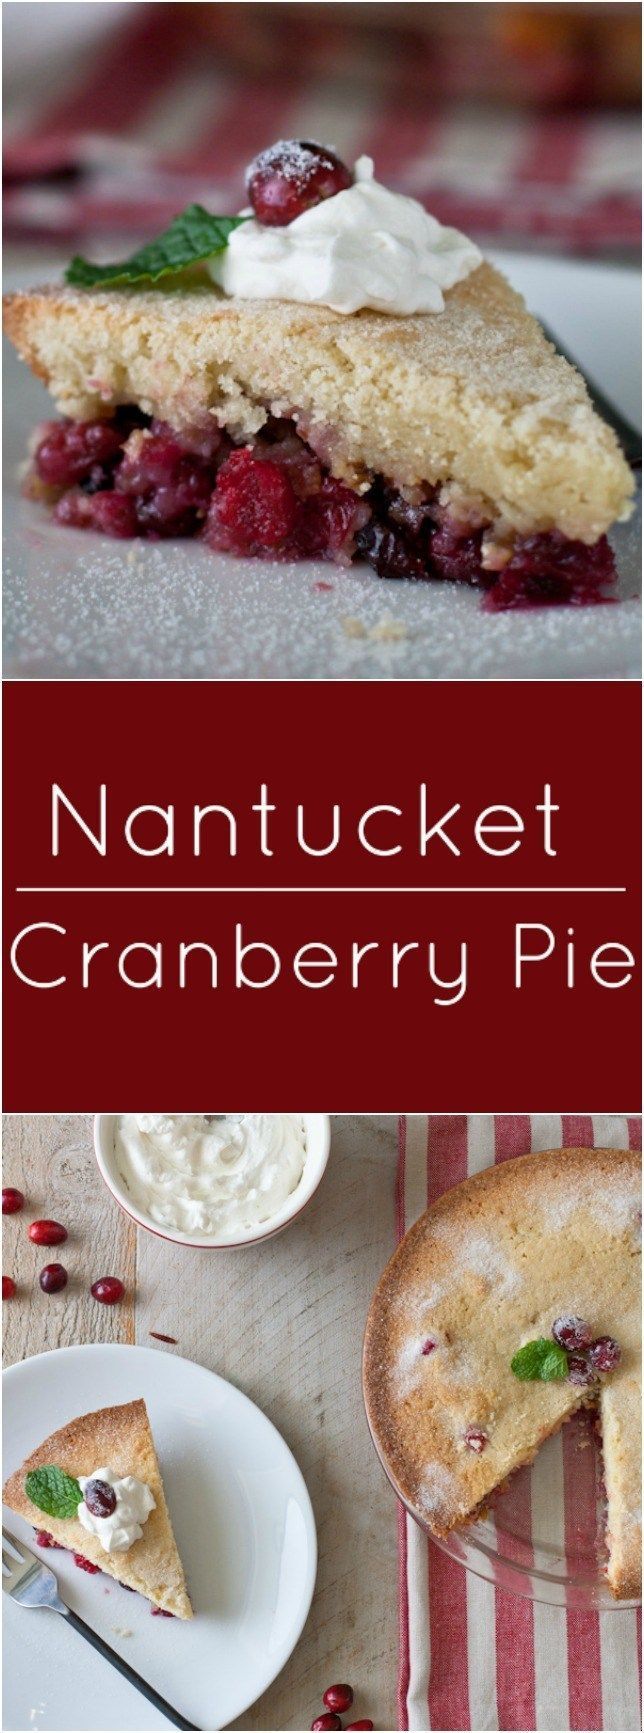 Nantucket Cranberry Pie is an fast and easy addition to any dessert buffet.